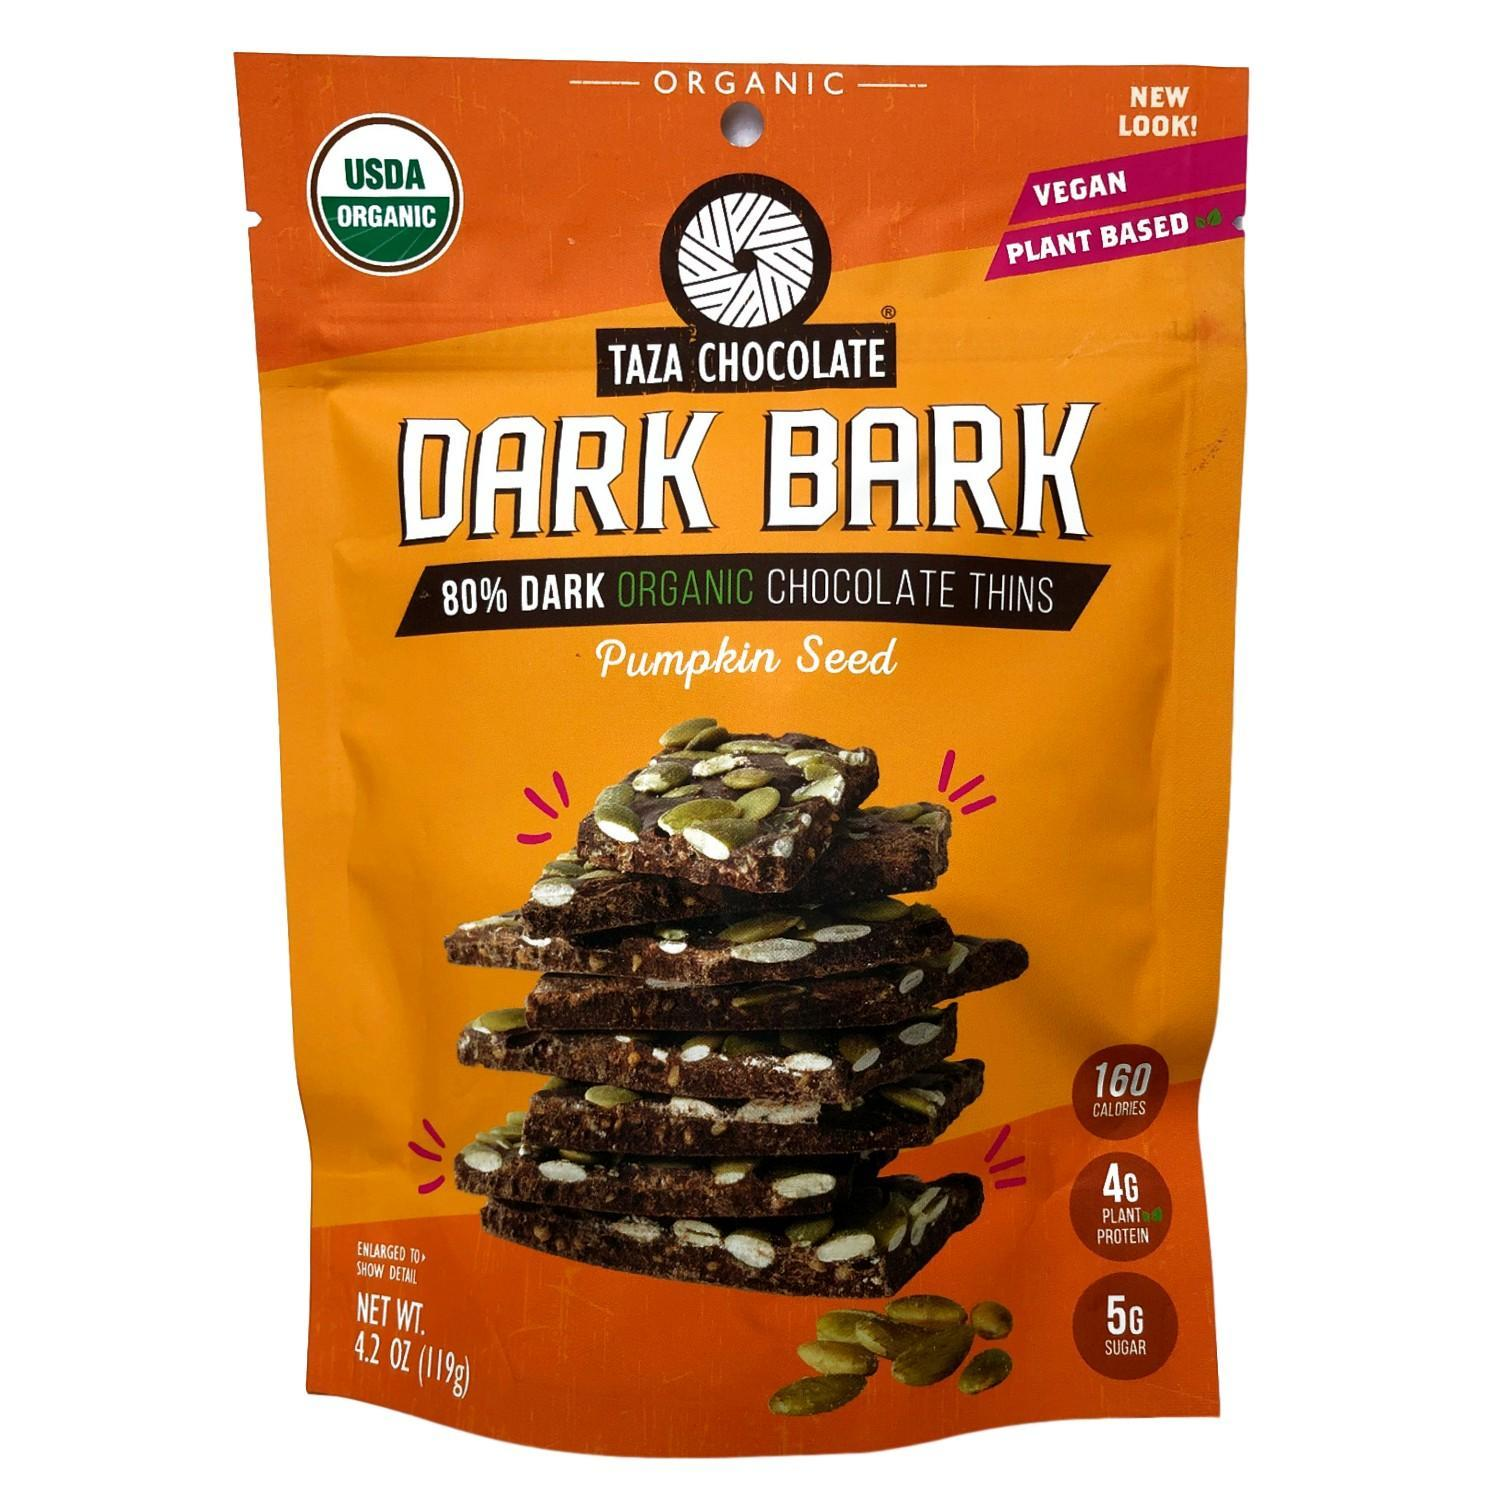 DARK BARK CHOCOLATE